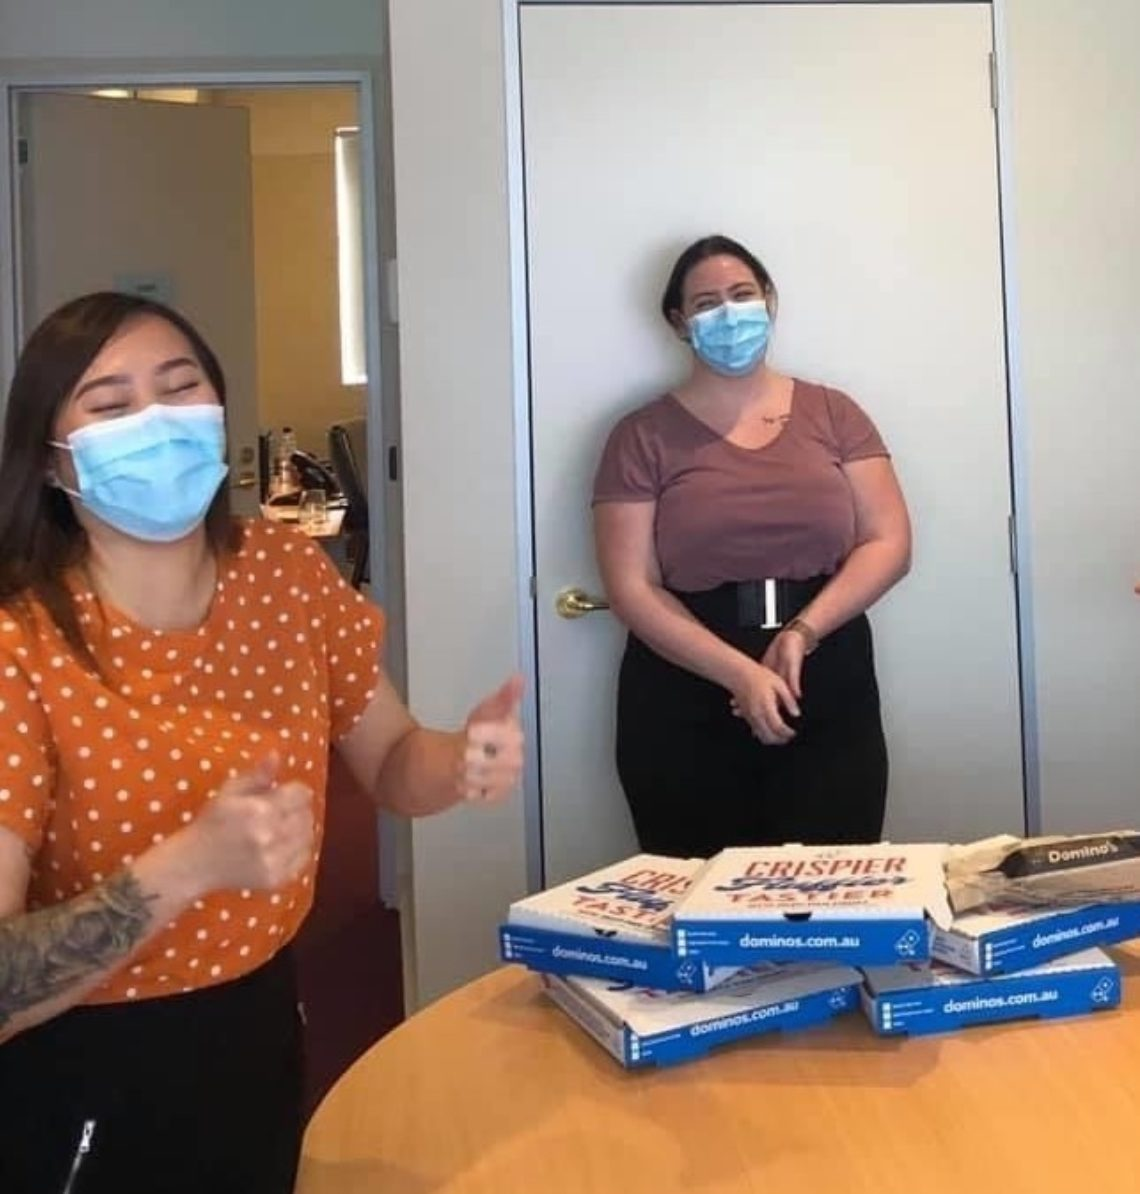 Dominos Donation To Holdsworth Medical Centre Fortitude Valley On Franchise Buyer